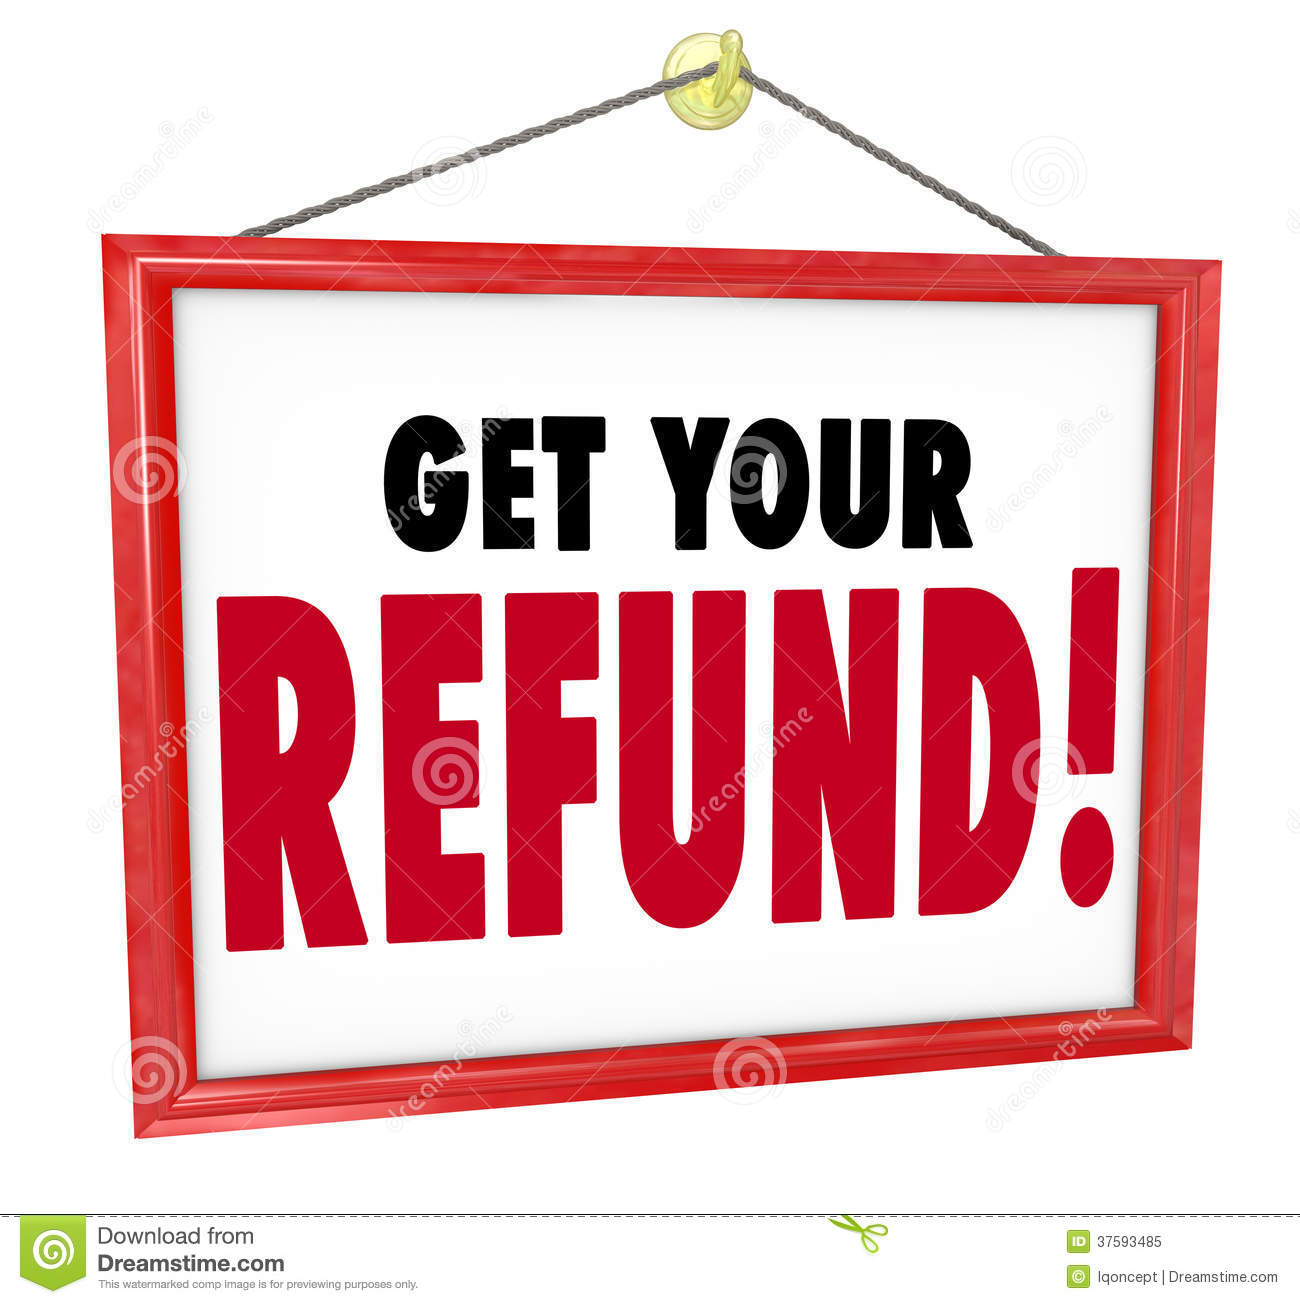 The Return Shipping On Us service applies when a free return shipping or return shipping refund service is not offered by the seller or merchant from whom You made Your purchase. If the seller or merchant from whom You made your purchase offers a free return shipping or return shipping refund service by regular postal mail, courier, or any.